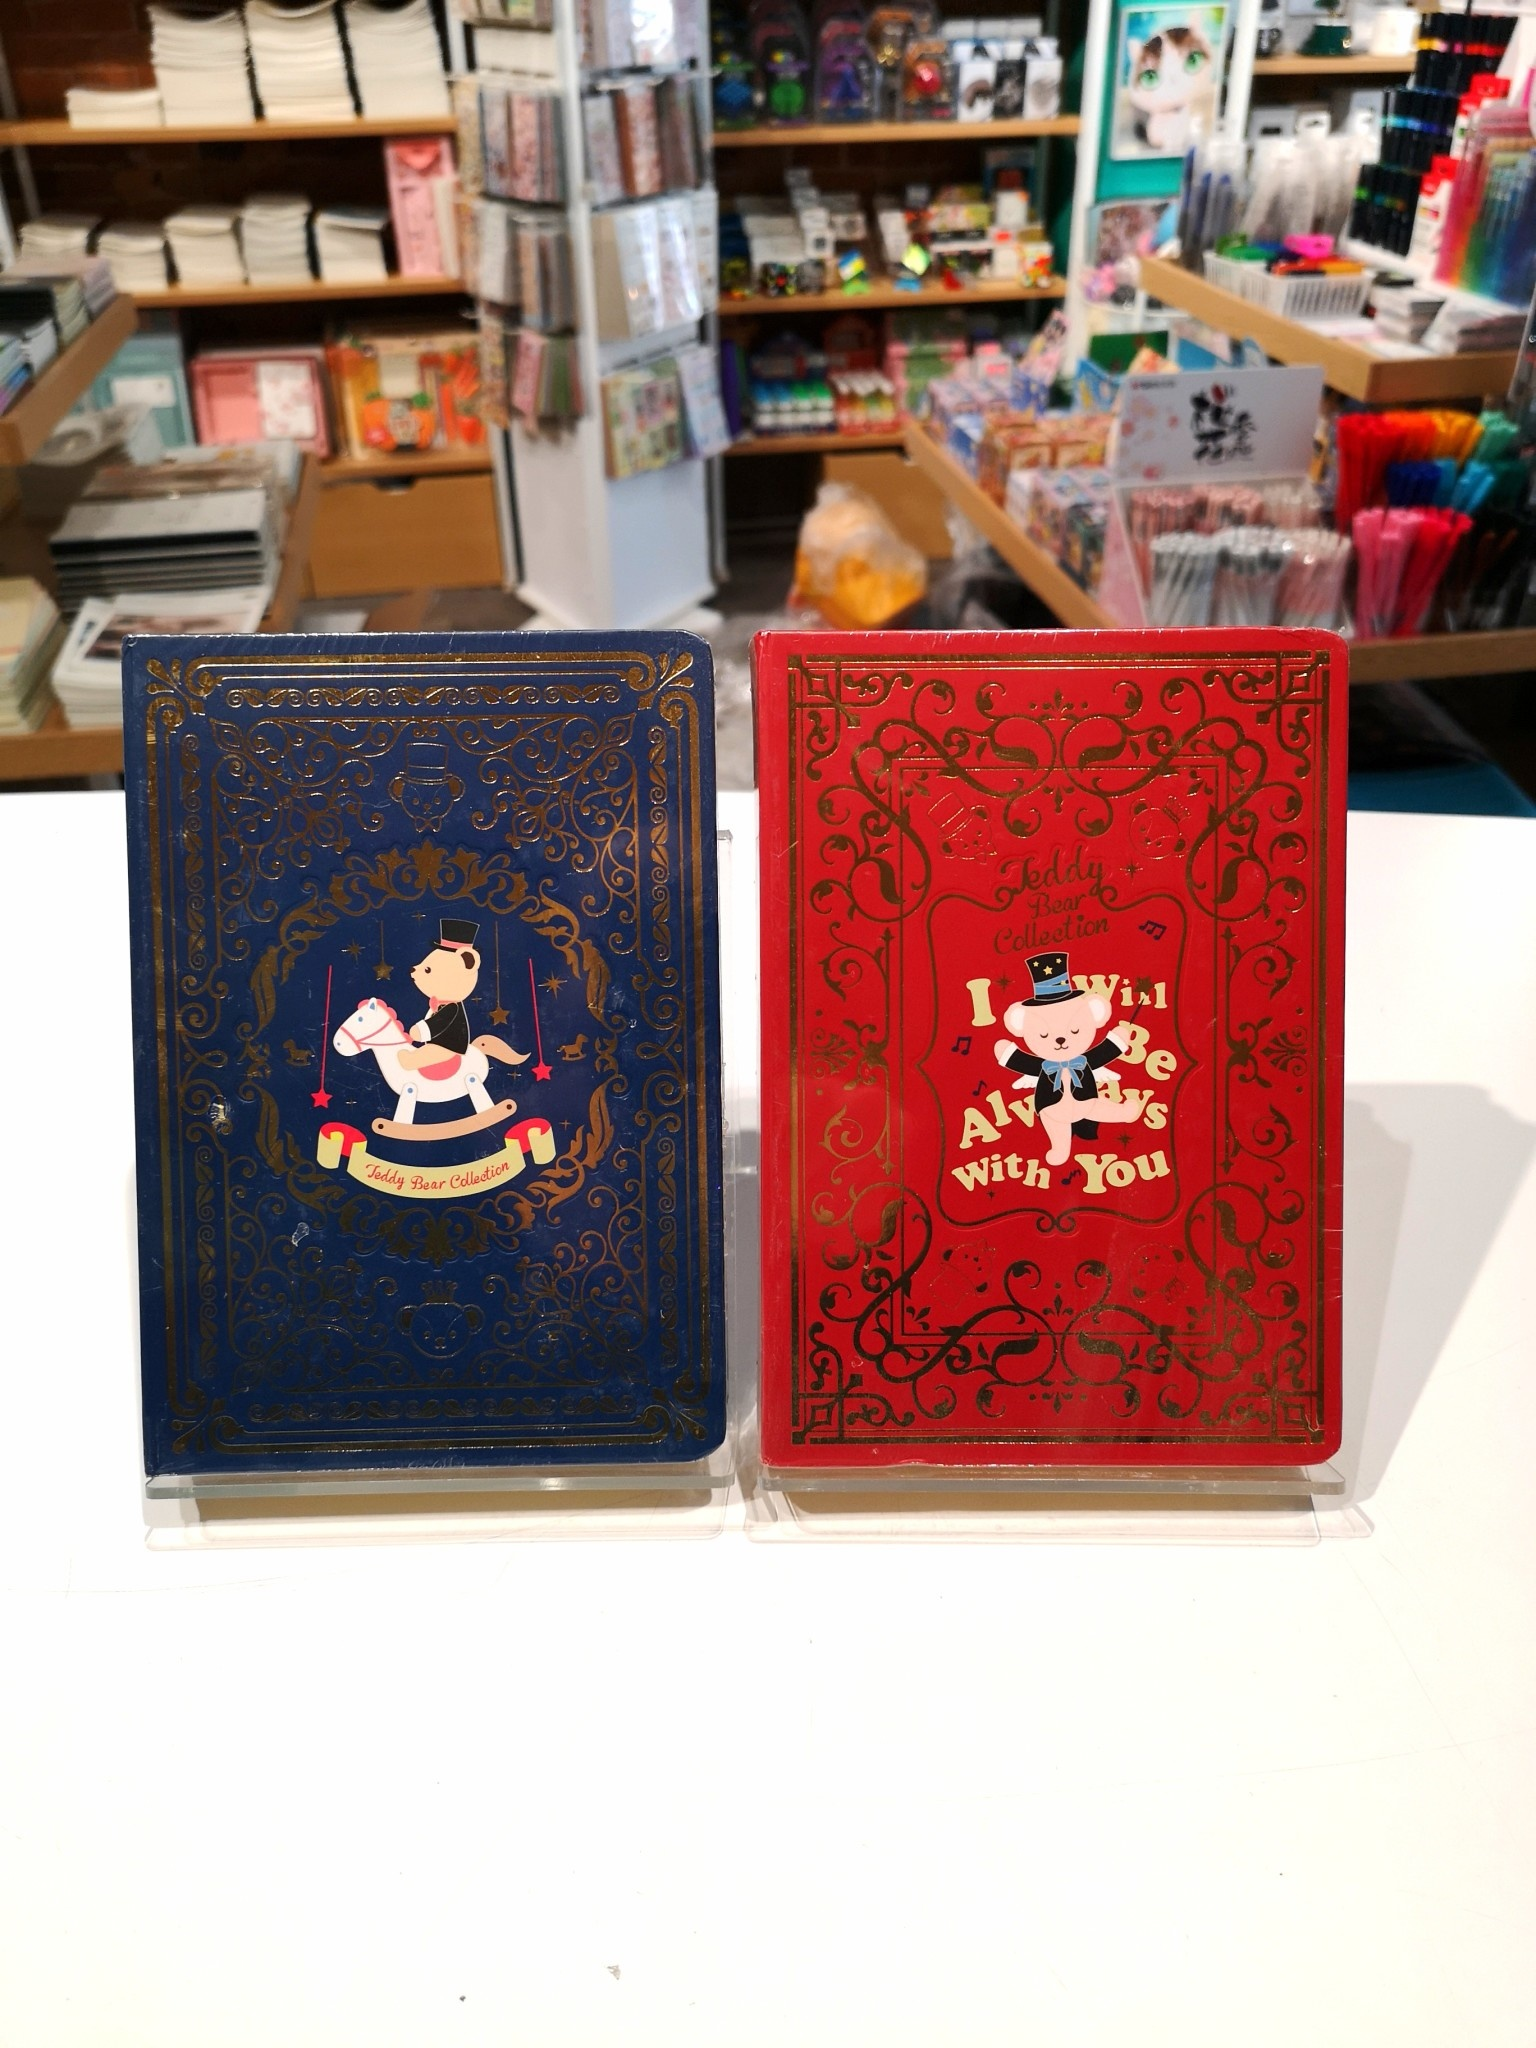 QPYDR934 32240 Teddy Bear Notebook